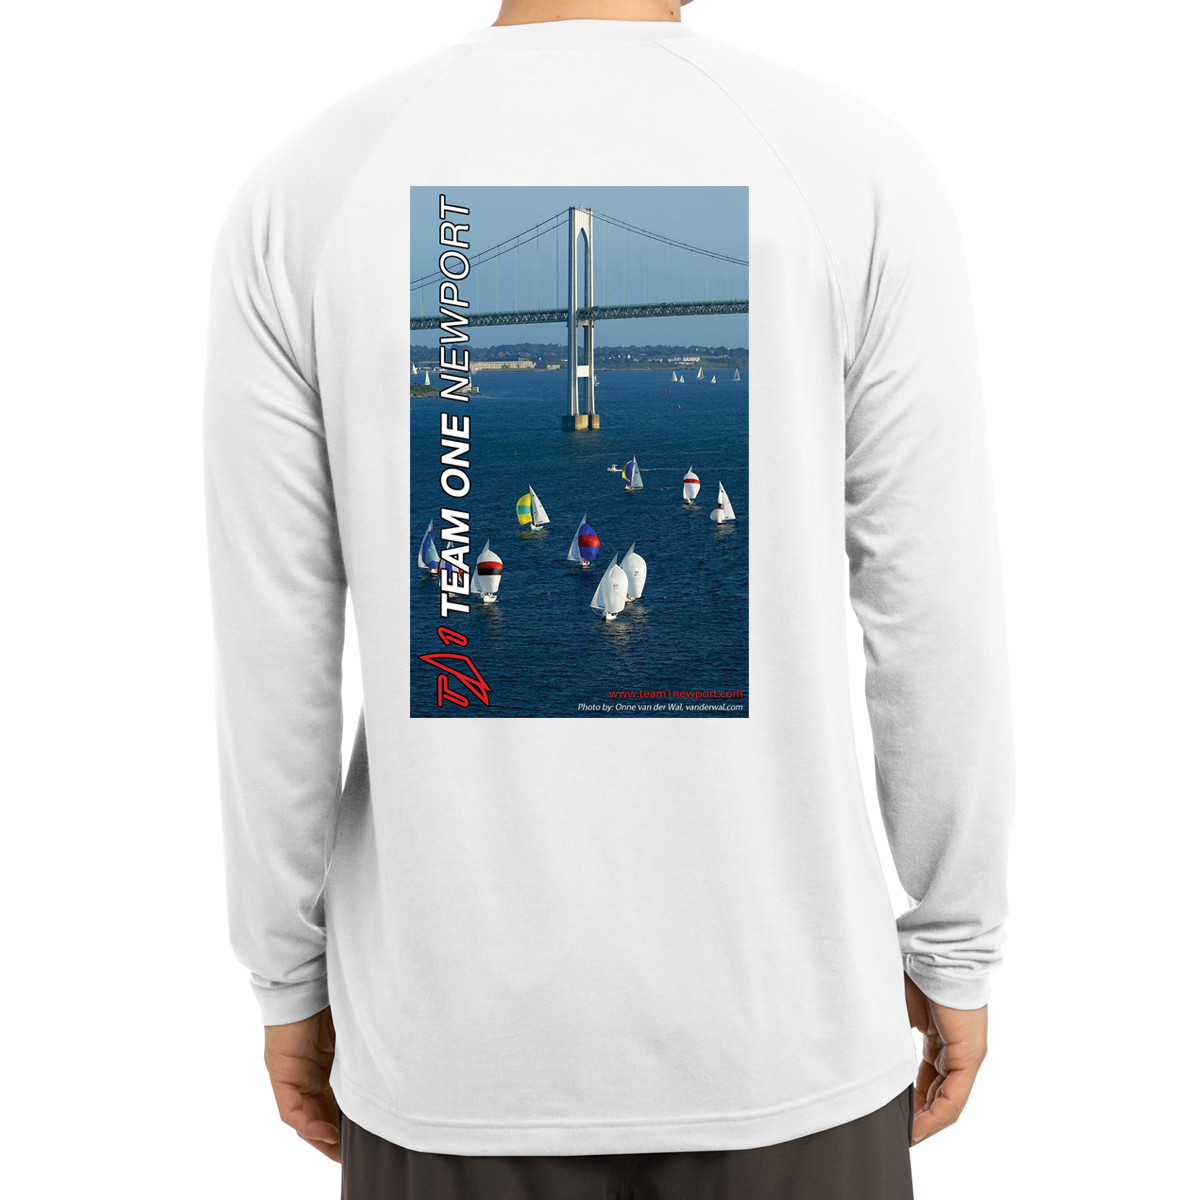 TEAM ONE NEWPORT K'S L/S TECH TEE - Shields at the Bridge